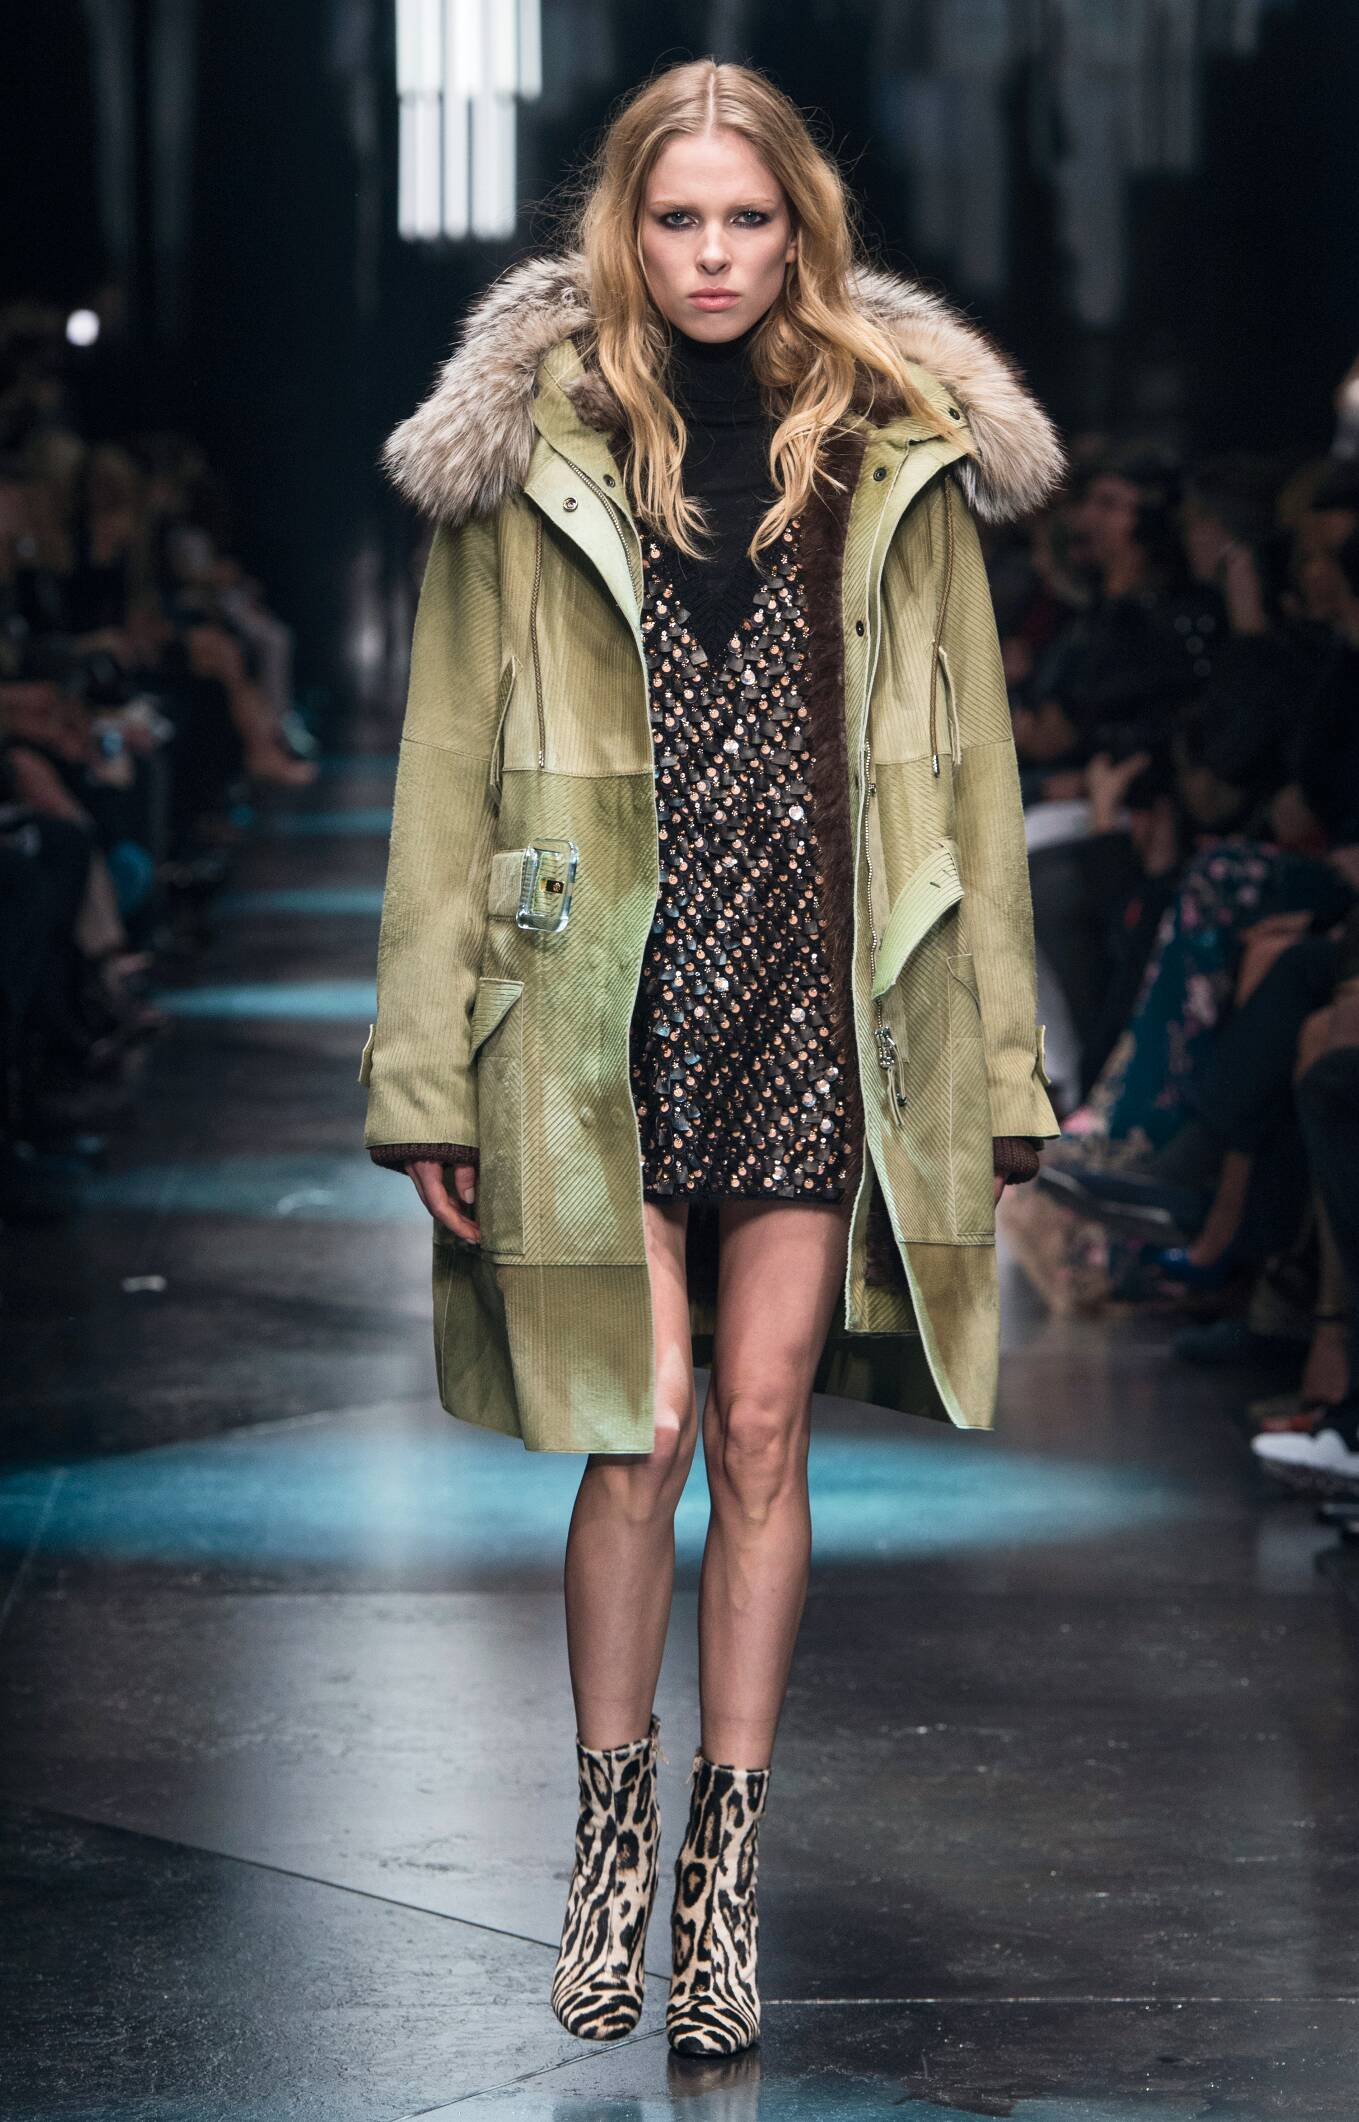 Catwalk Roberto Cavalli Fall Winter 2015 16 Women's Collection Milan Fashion Week